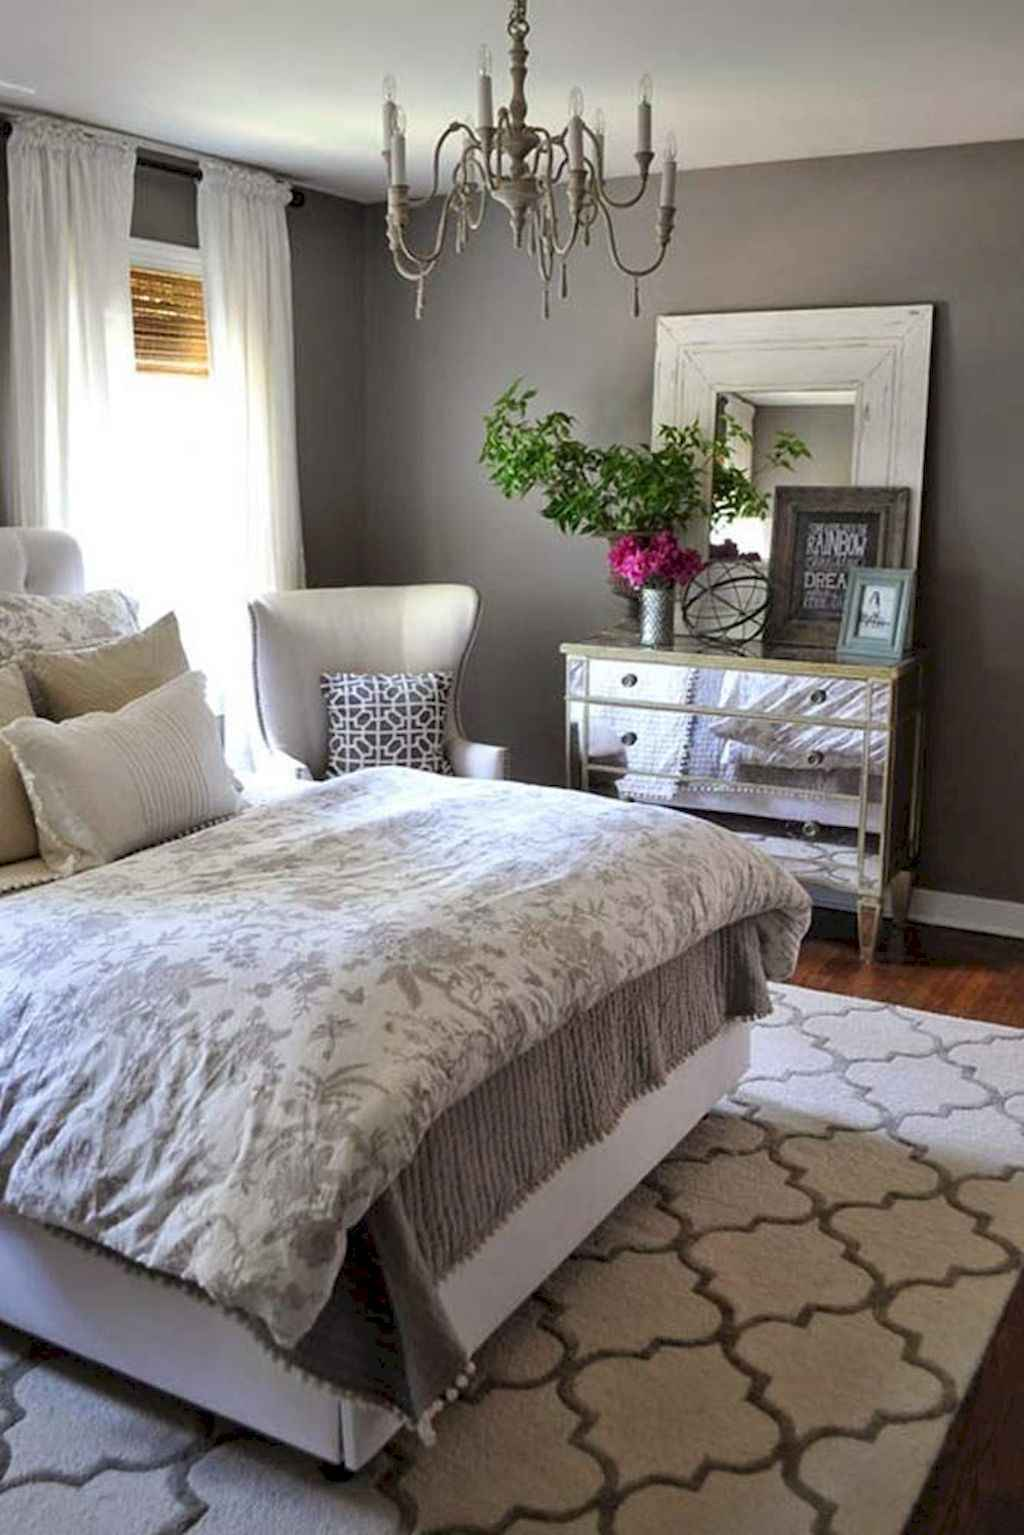 Couples first apartment decorating ideas (107)